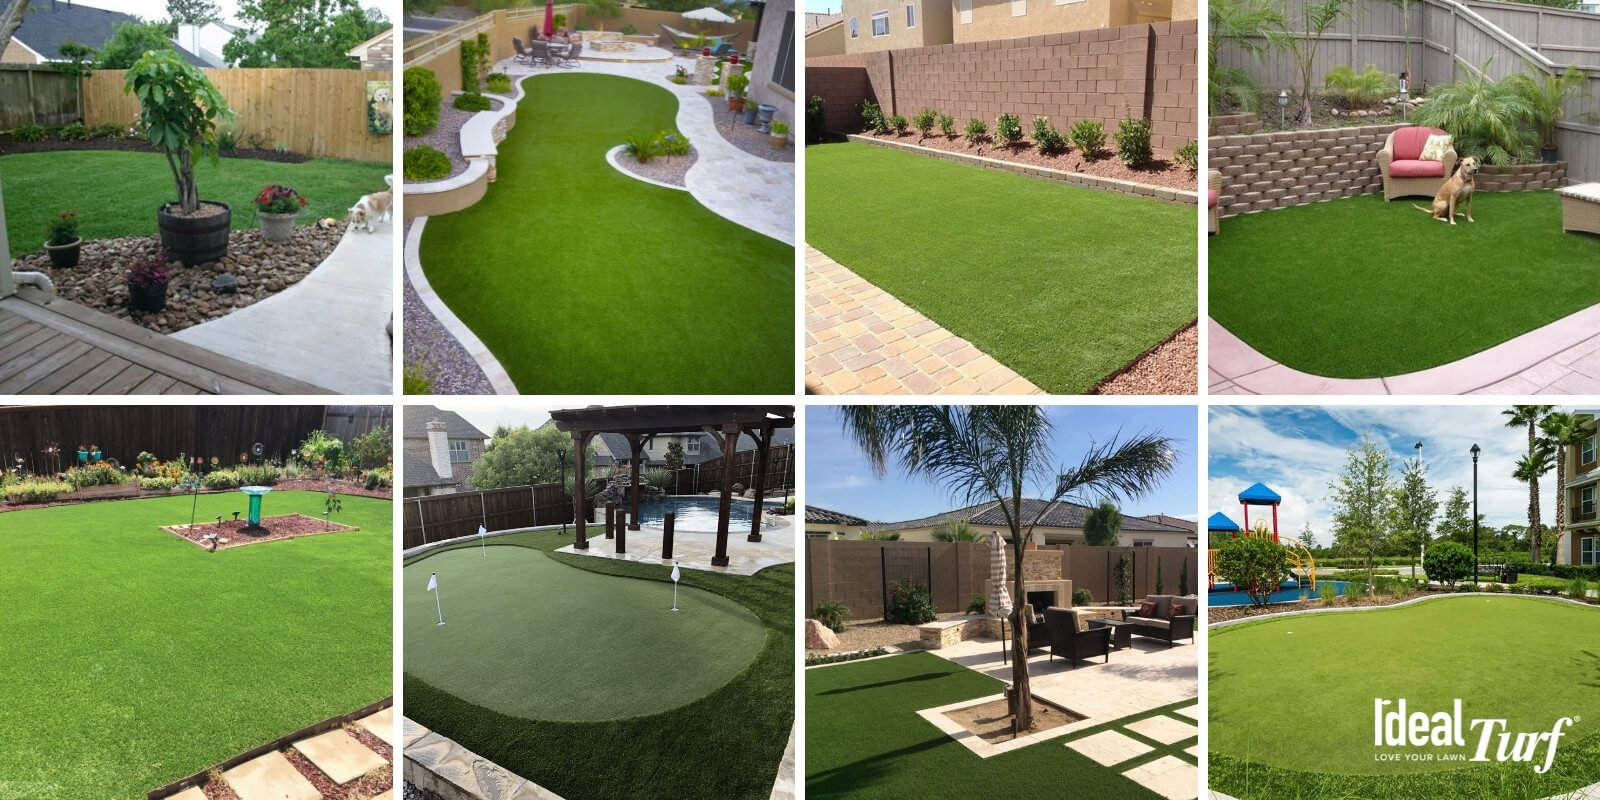 33 Questions You Should Ask Before Buying Artificial Turf 1